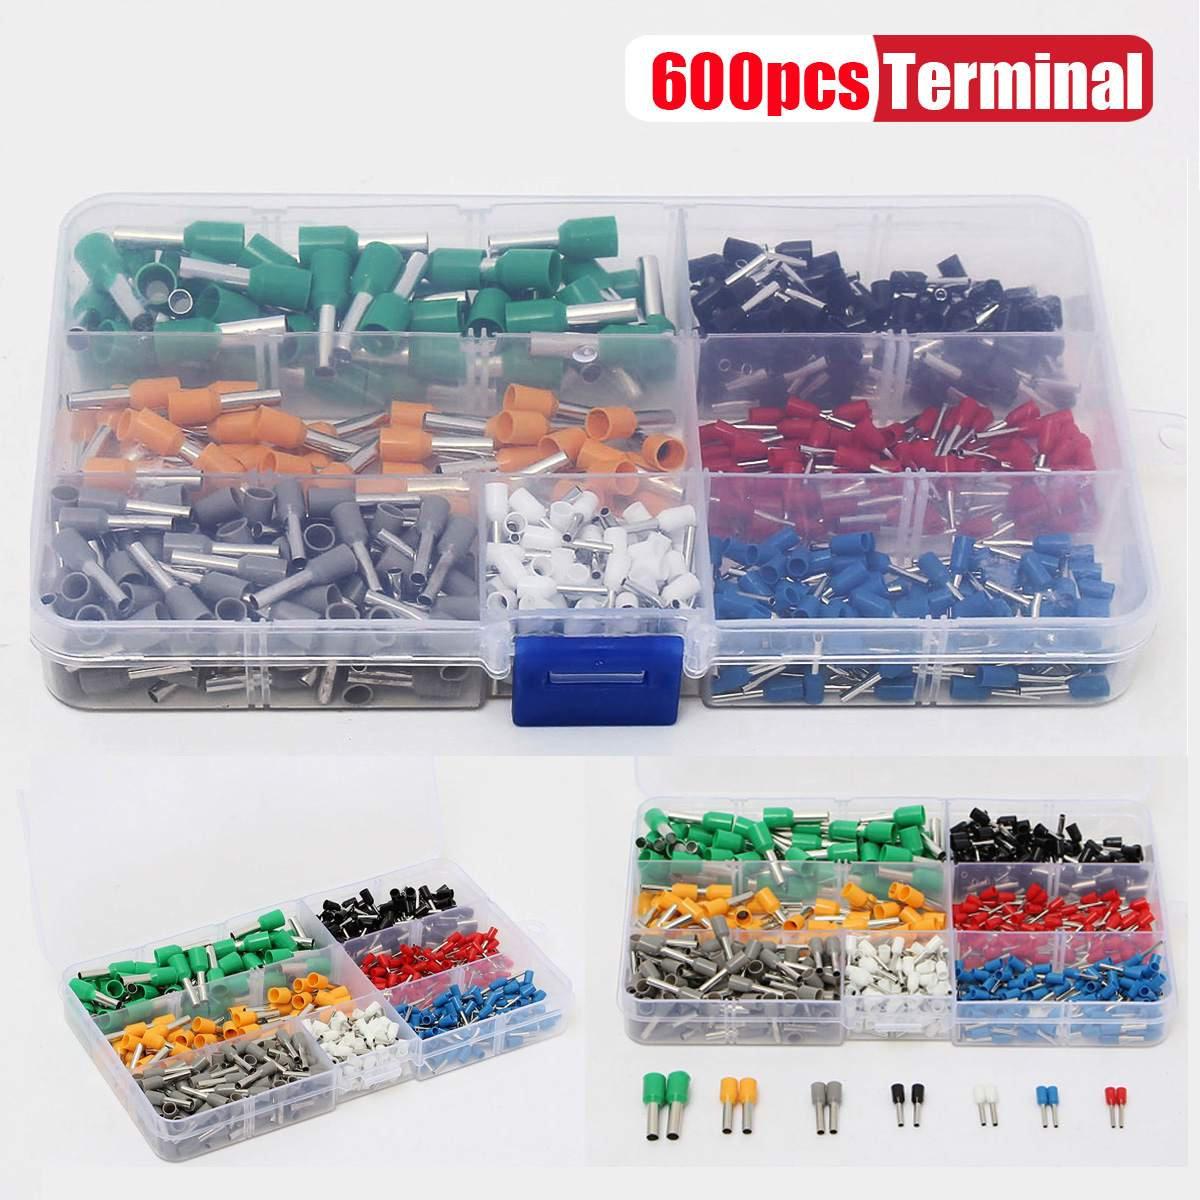 600Pcs Spade Insulated Cord Pin End Cable Wire Terminal Electrical Mixed Copper Wire Crimp Tube Connector 22-10AWG600Pcs Spade Insulated Cord Pin End Cable Wire Terminal Electrical Mixed Copper Wire Crimp Tube Connector 22-10AWG